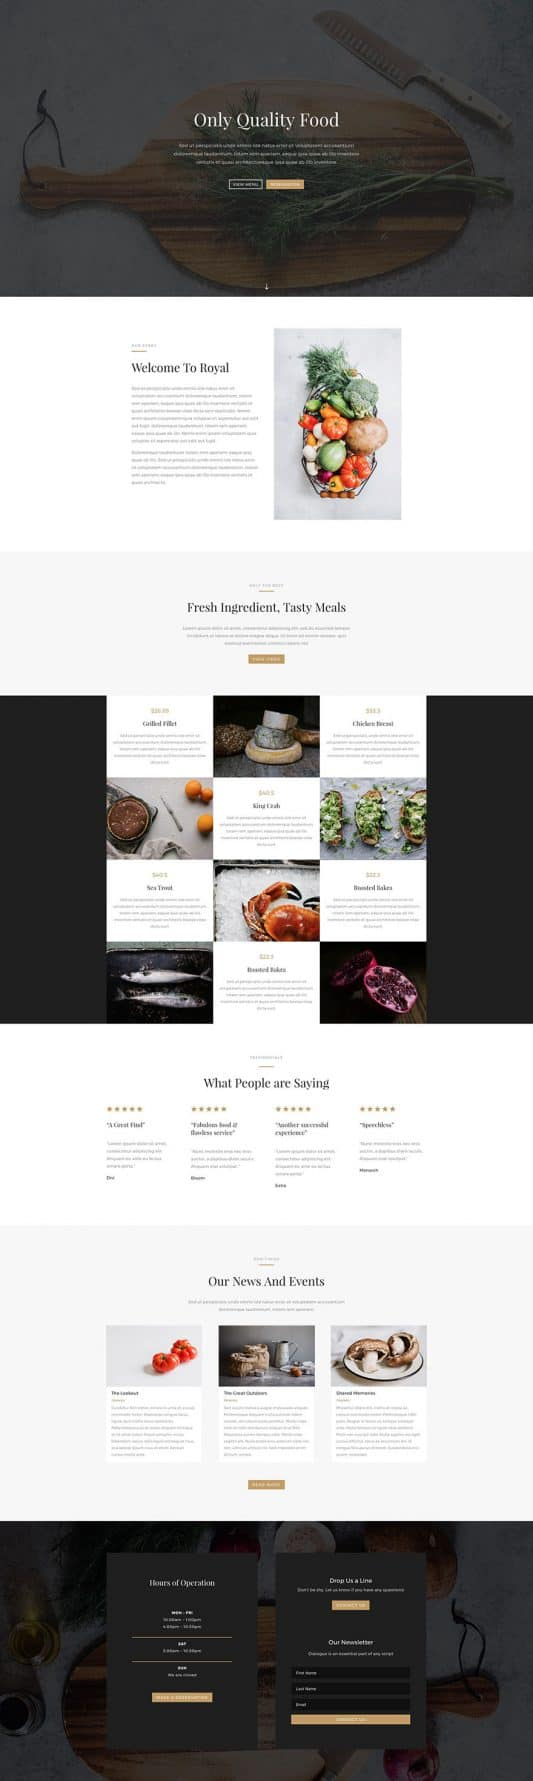 Bed And Breakfast Web Design 1